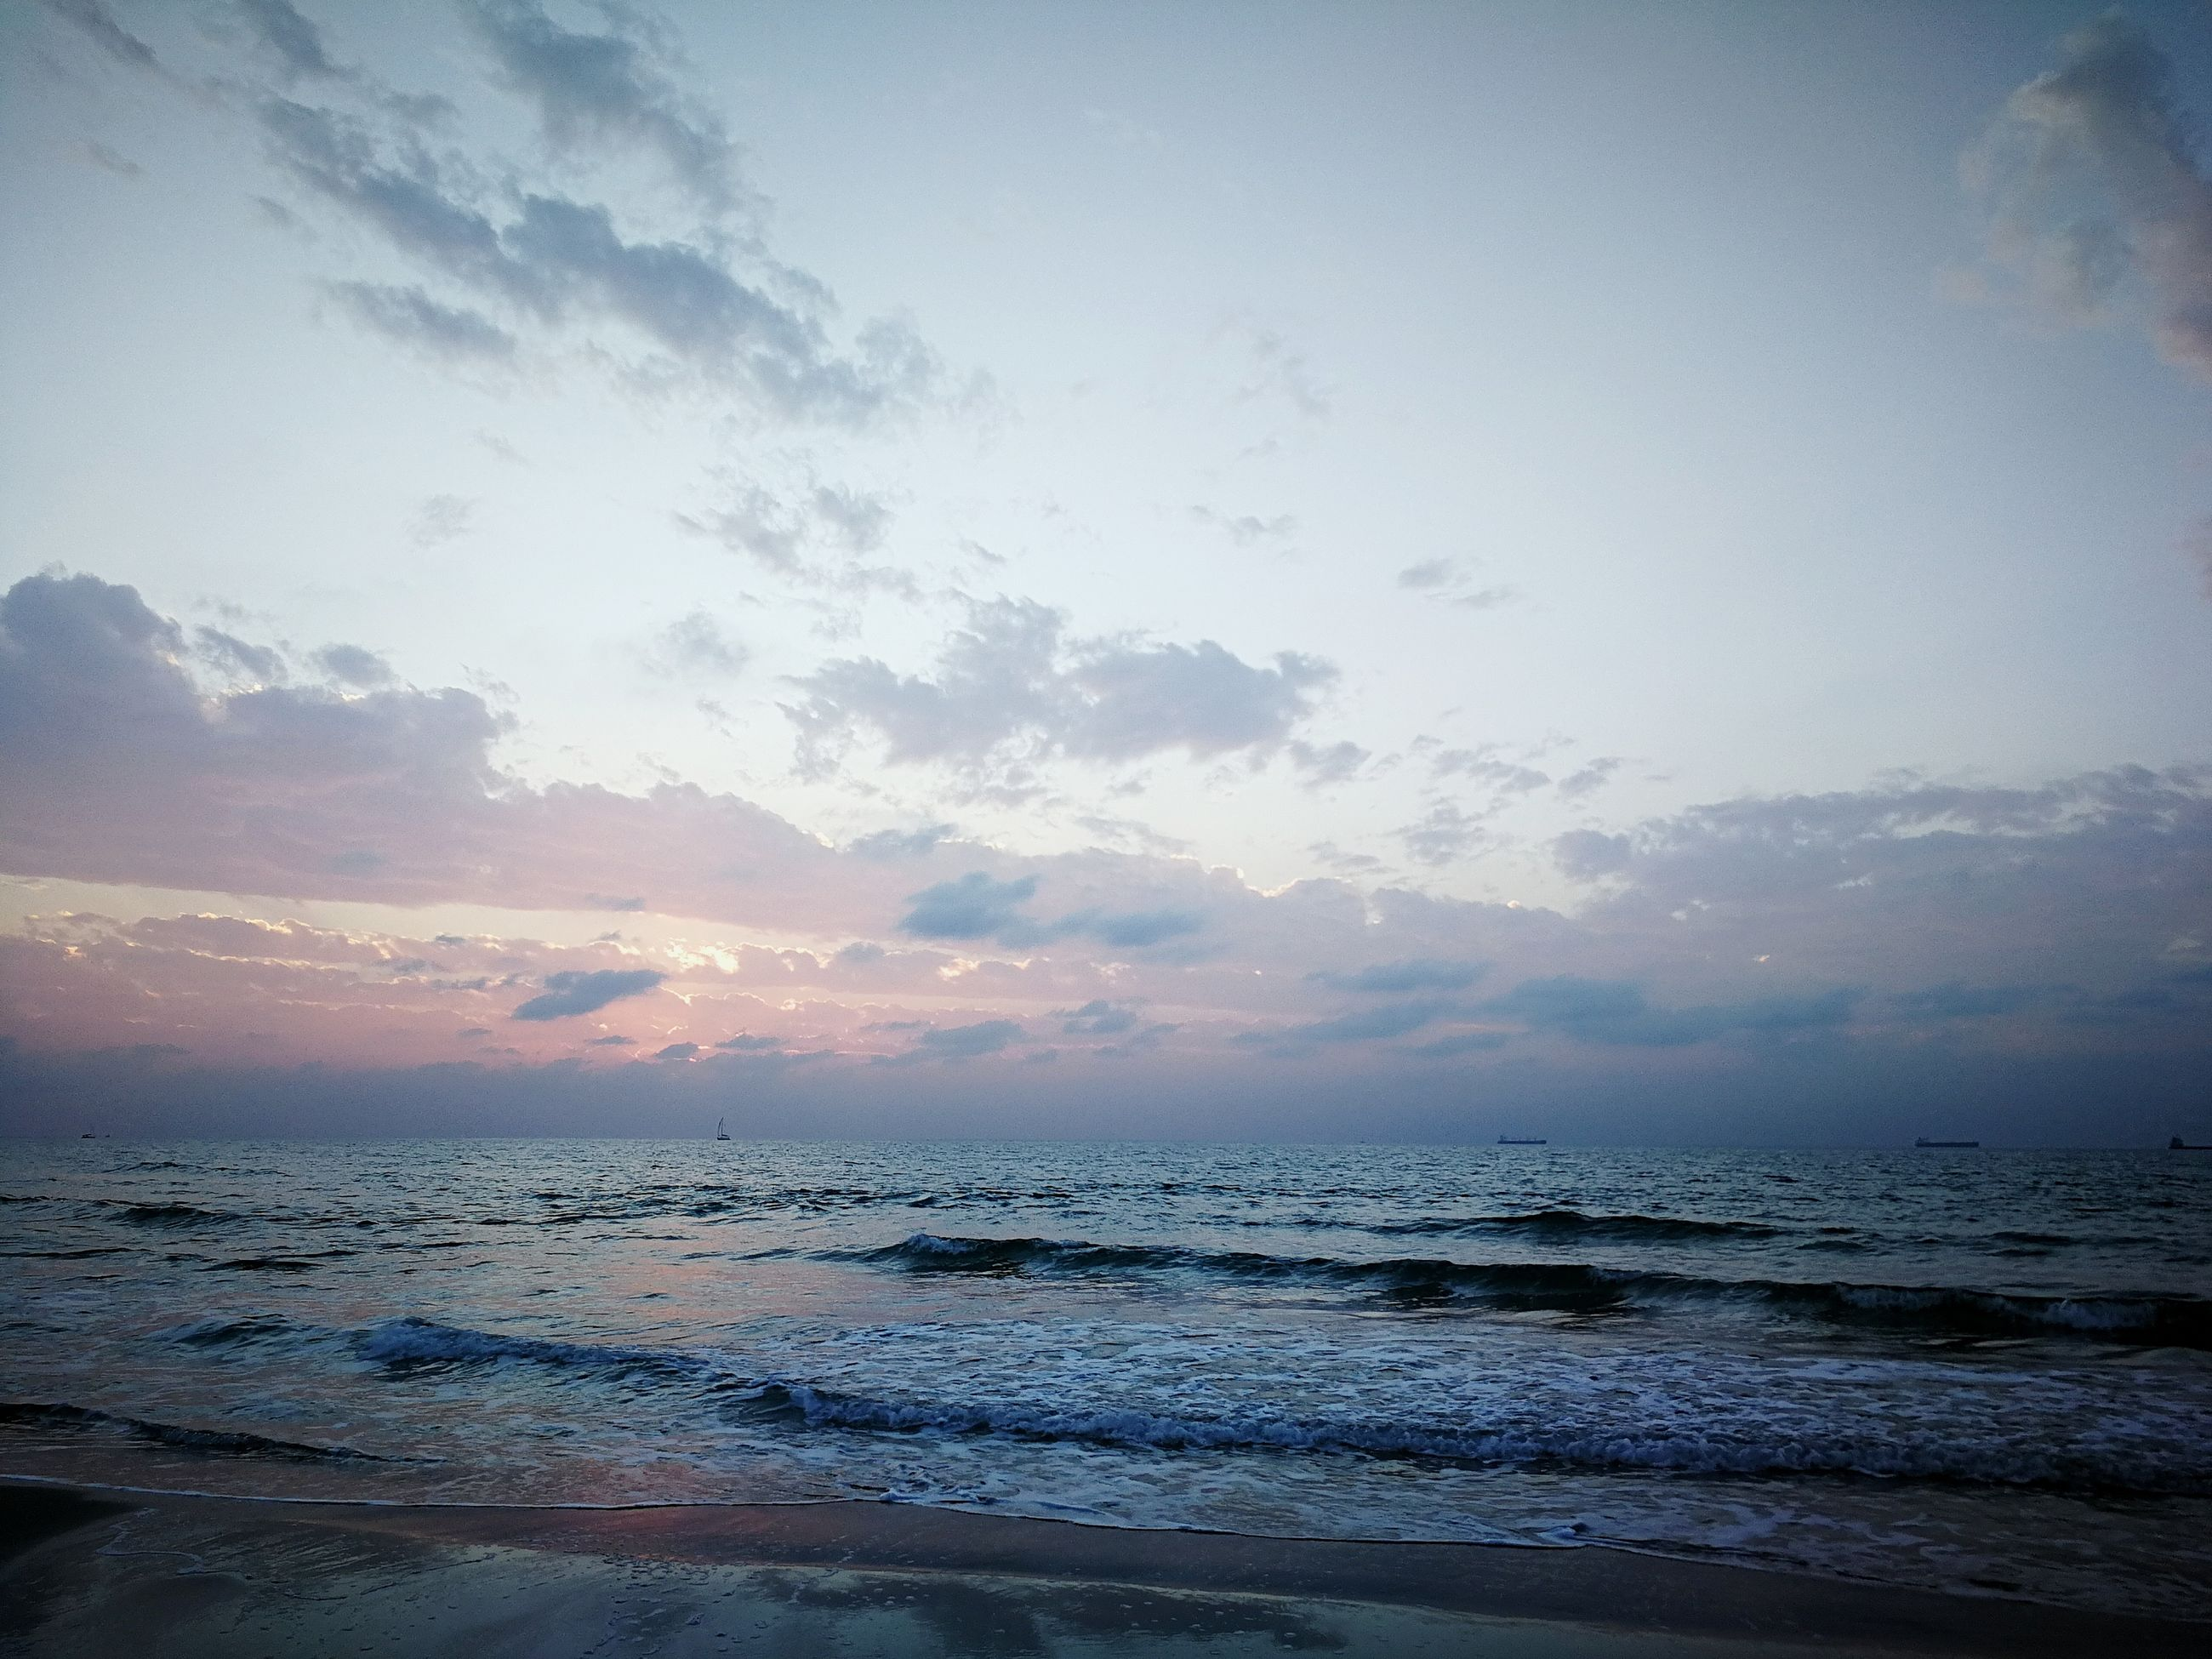 sea, beauty in nature, water, scenics, nature, tranquil scene, sunset, sky, tranquility, horizon over water, beach, no people, outdoors, day